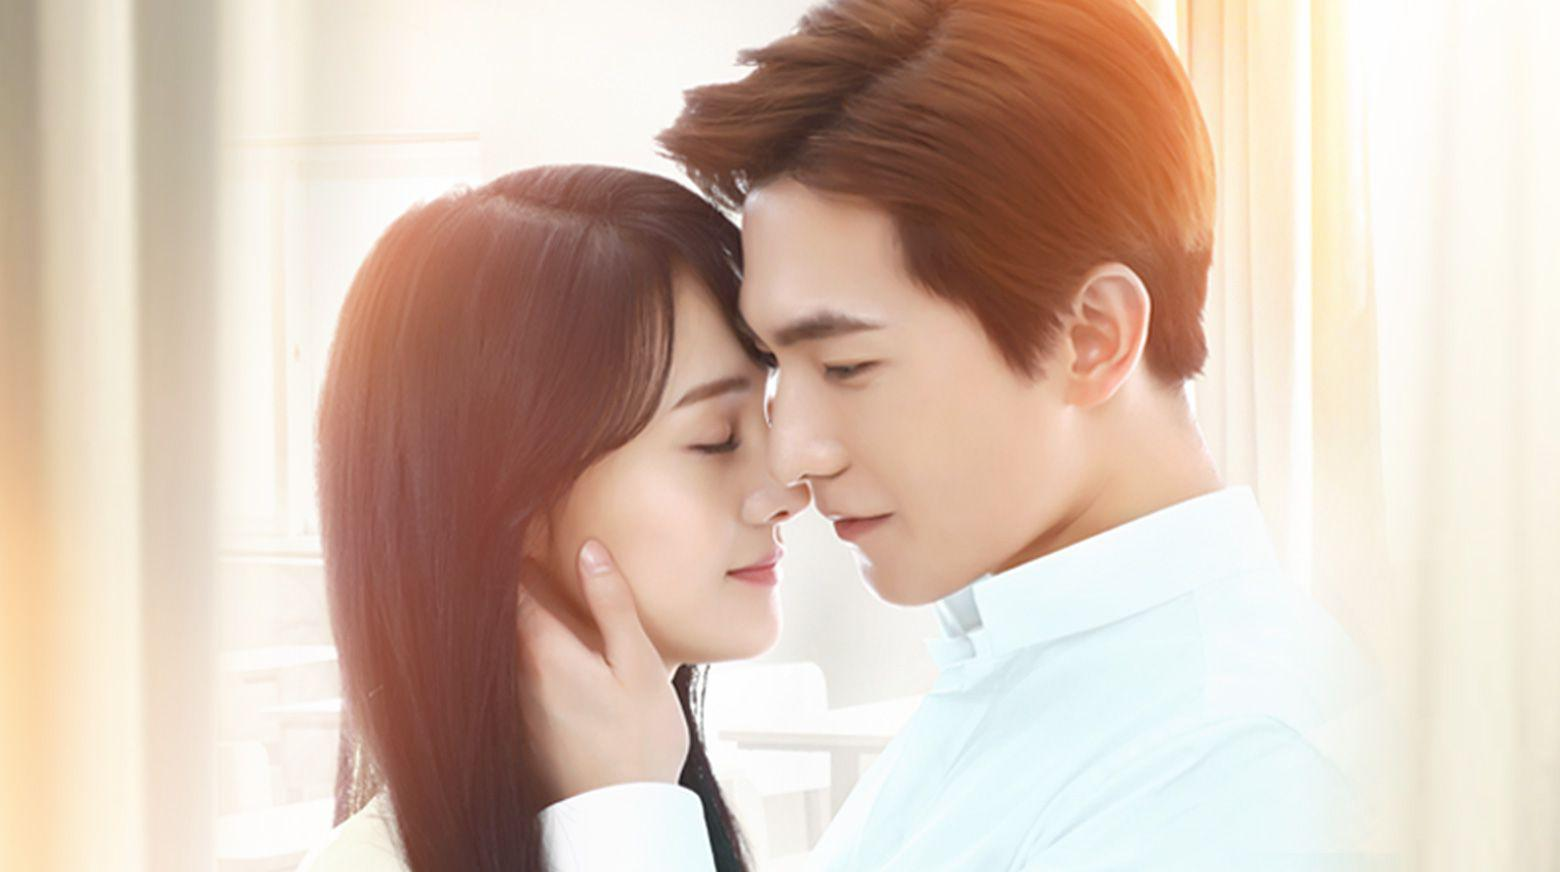 Love O2O Episode 5 - 微微一笑很倾城 - Watch Full Episodes Free